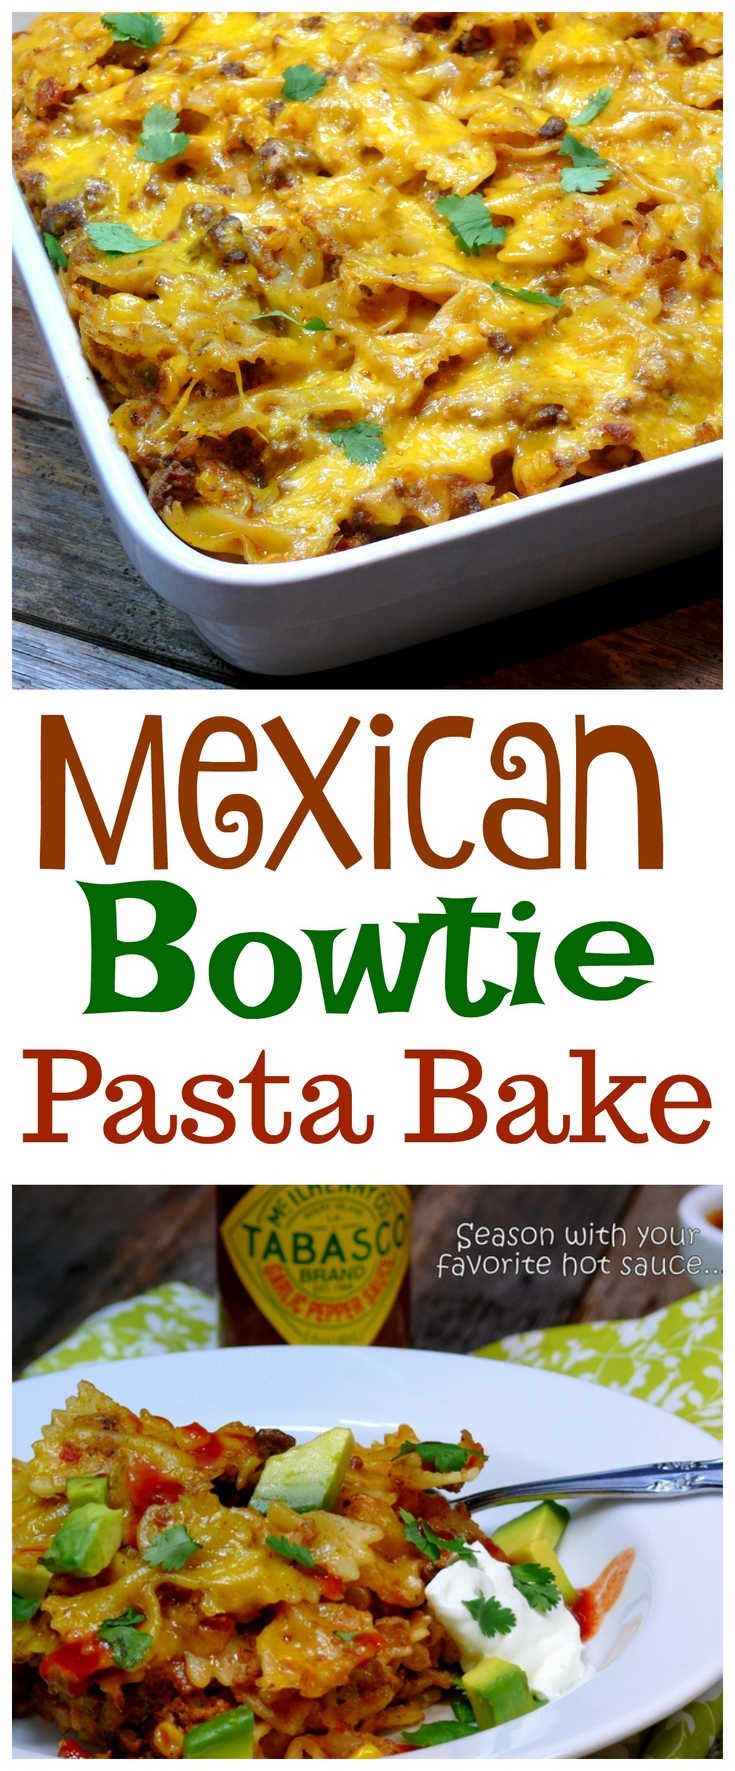 VIDEO + Recipe: Garnish this MEXICAN BOWTIE PASTA BAKE with fresh avocado, sour cream, cilantro and a favorite hot sauce. Makes for great leftovers too from NoblePig.com. #noblepig #cincodemayo #pasta #casserole #mexican via @cmpollak1